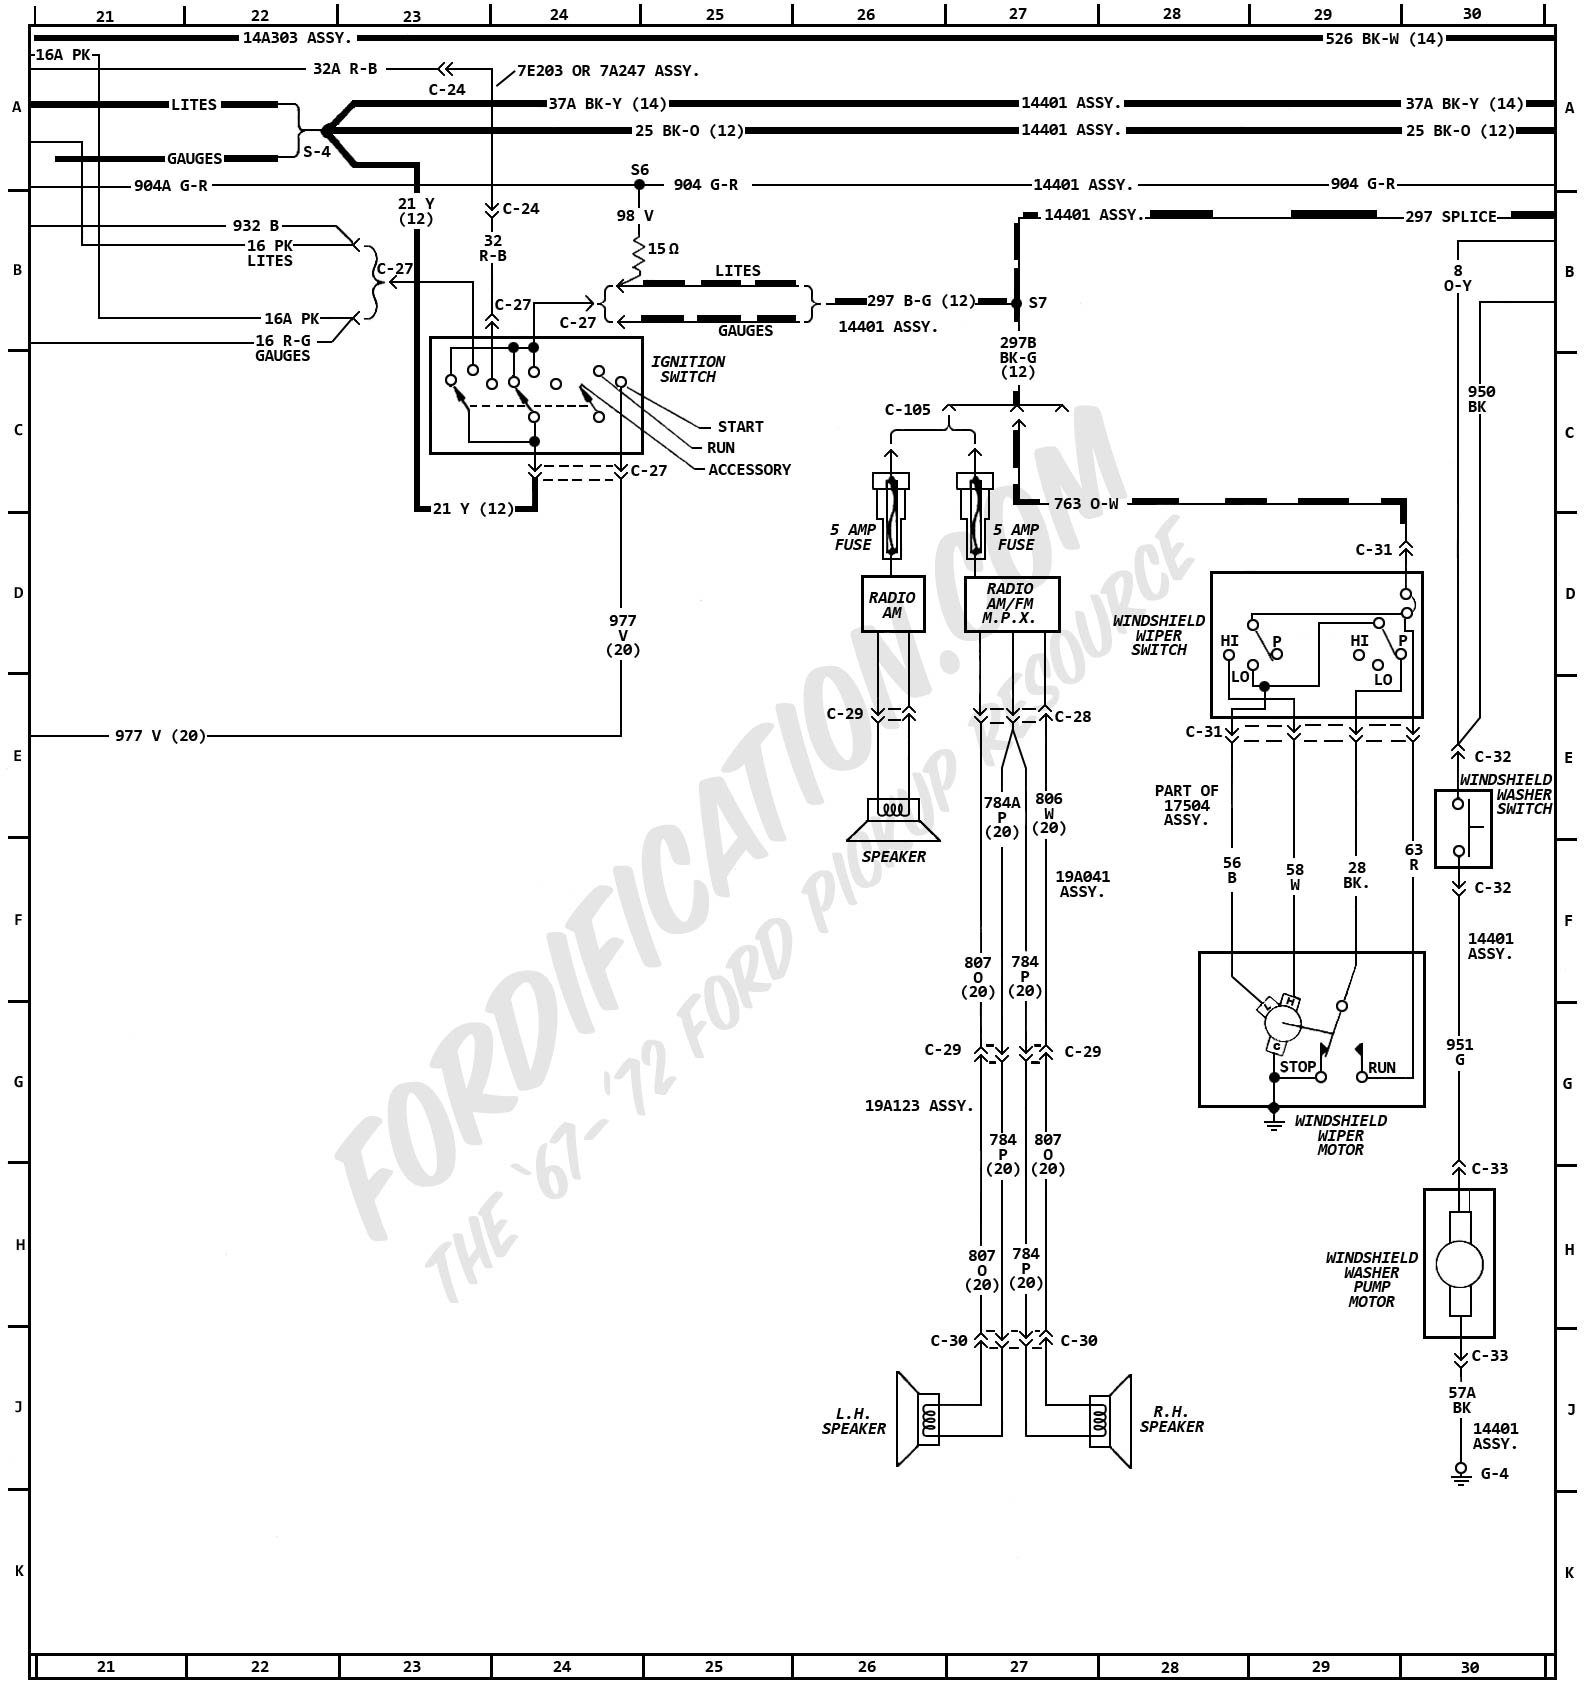 Ford F 150 C290 Connector Radio Wiring Diagram 29 Diagrams Schematic 1977 Alternator Library 69 Camaro 1972 F100 Schematics